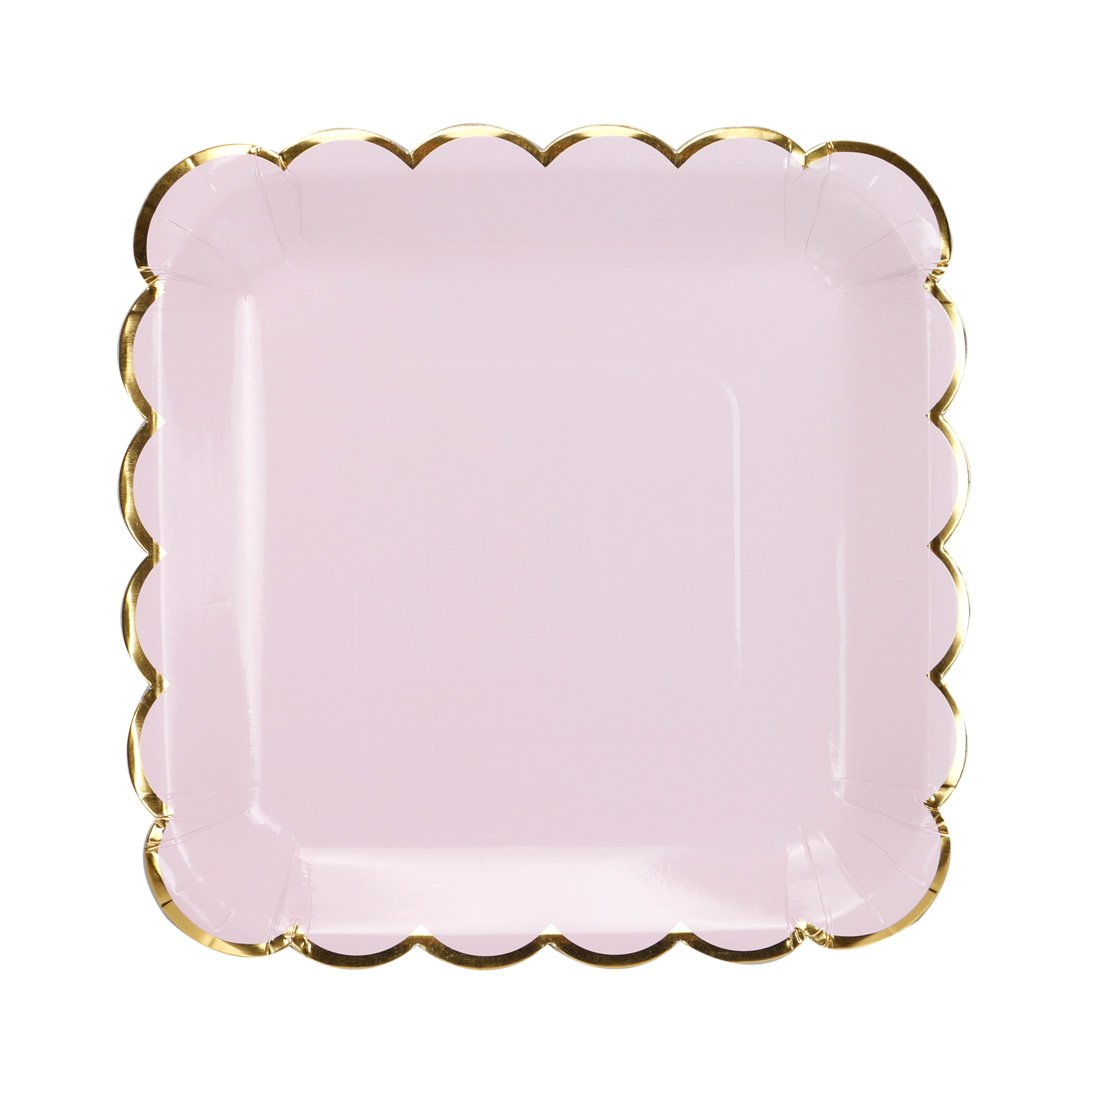 Geeklife Gold Paper Party Plates, Metallic Gold Border 9 inch Paper Dessert Plates, Pink Cute Decorative Plates Set, 20 count